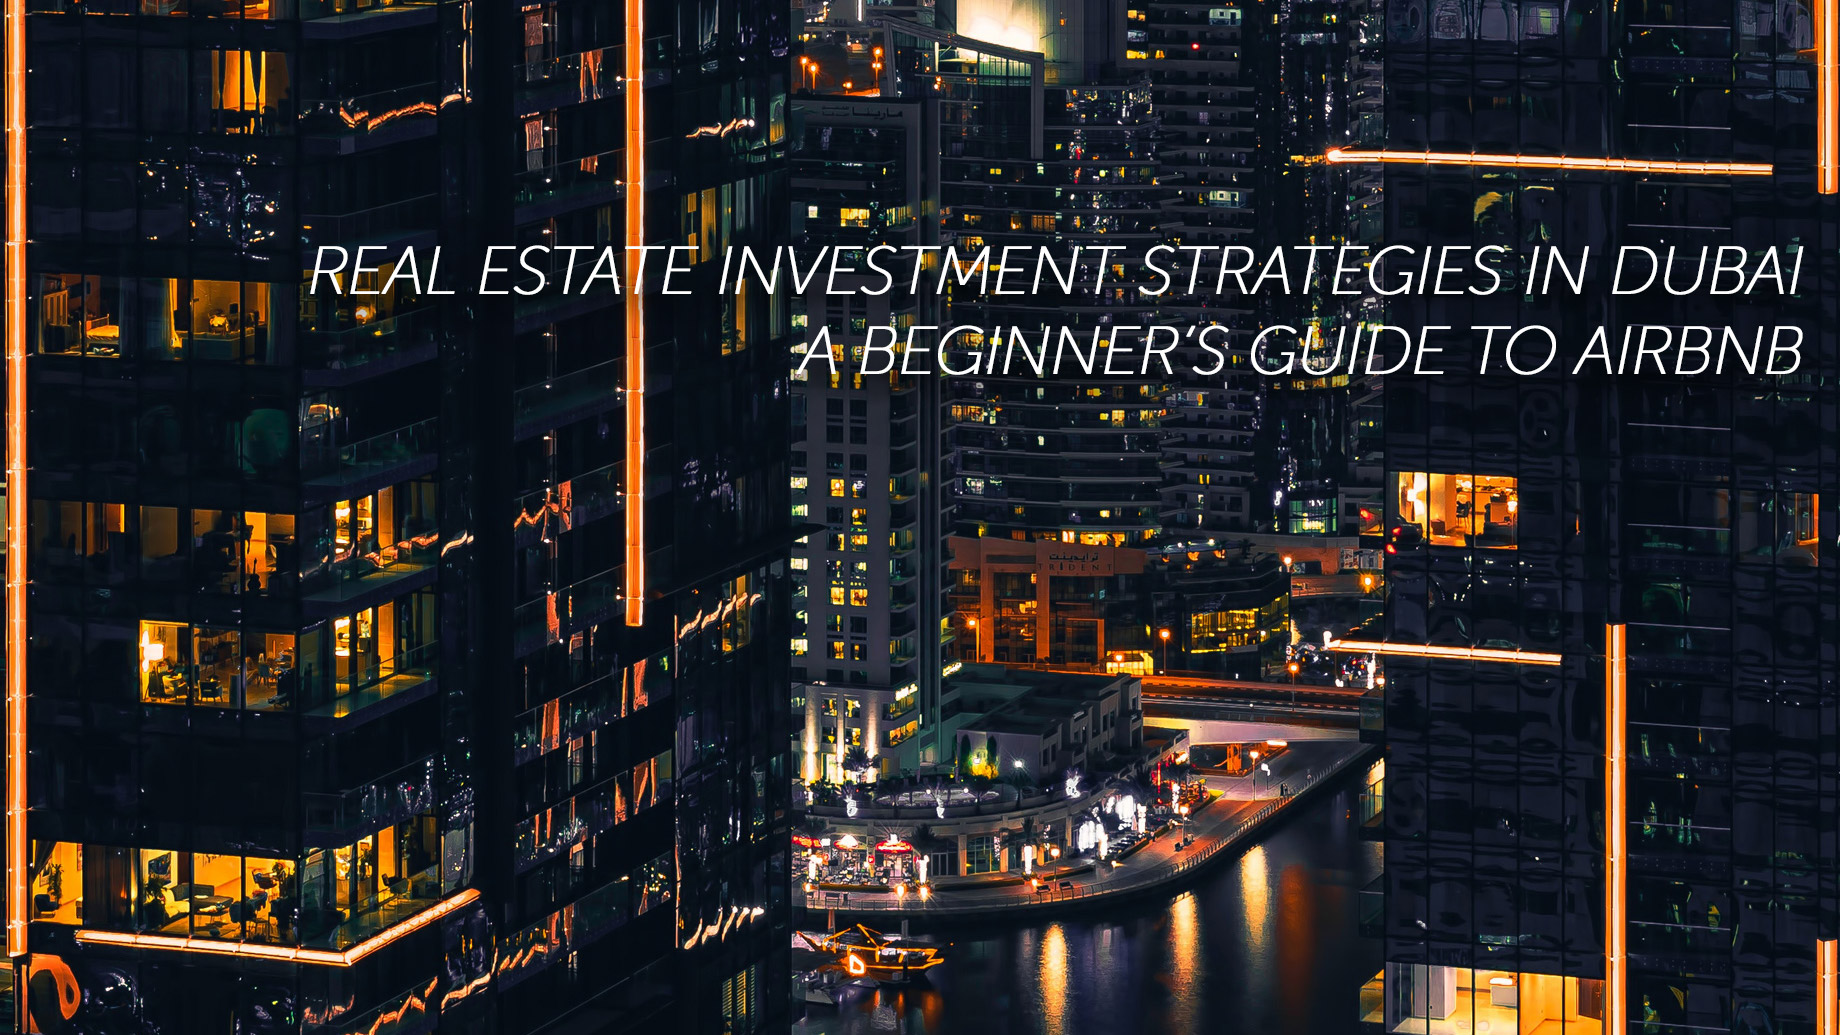 Real Estate Investment Strategies in Dubai - A Beginner's Guide to Airbnb